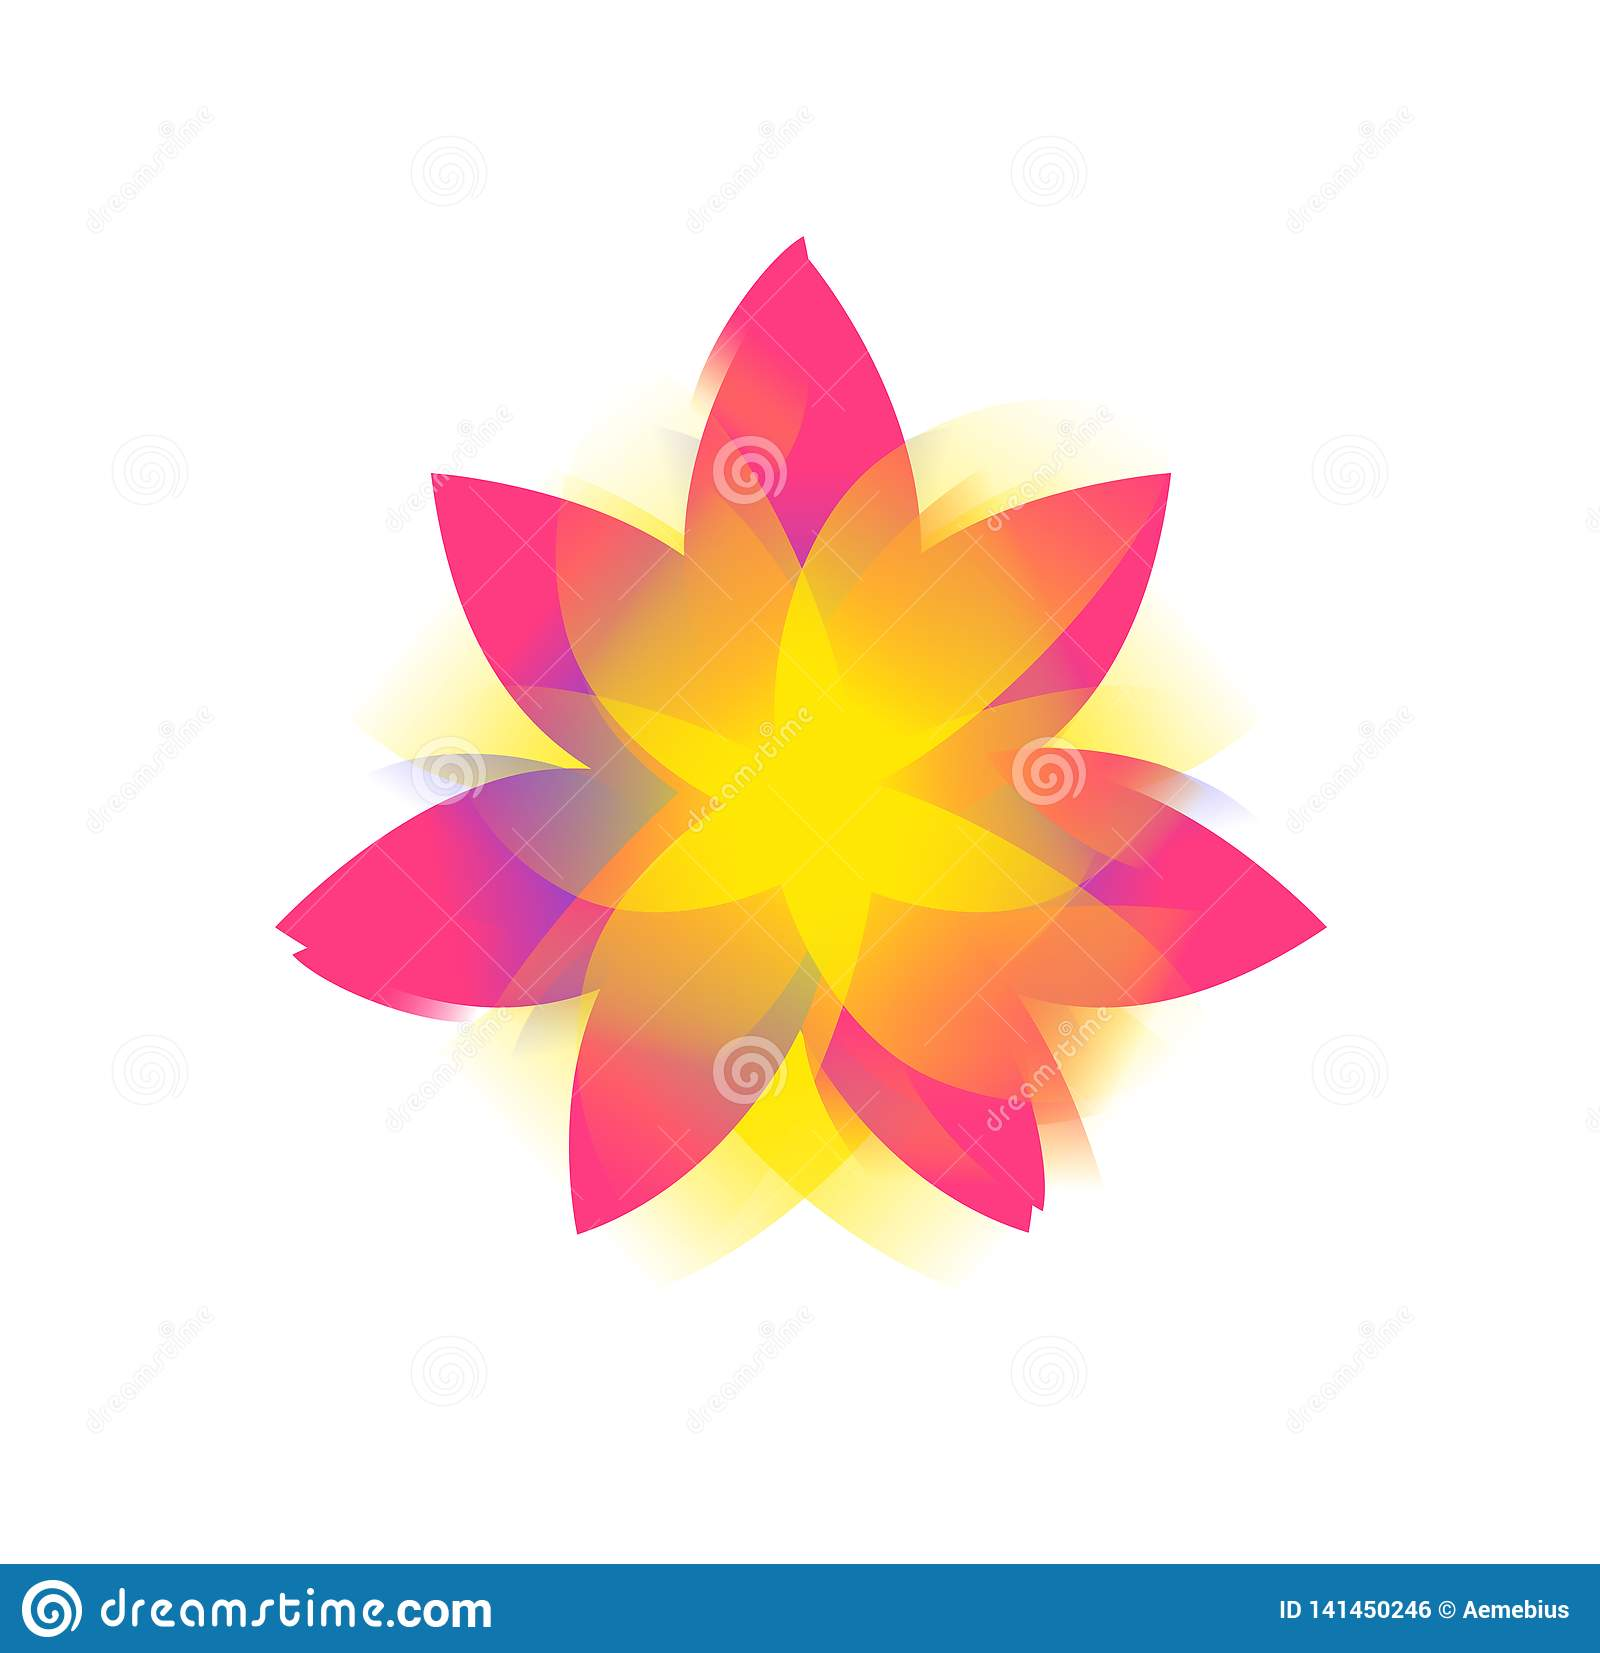 Lotus flower, logo, sign. Vector flat flower icon. Minimalistic image on an isolated background. Lotus for yoga studio, spa. The